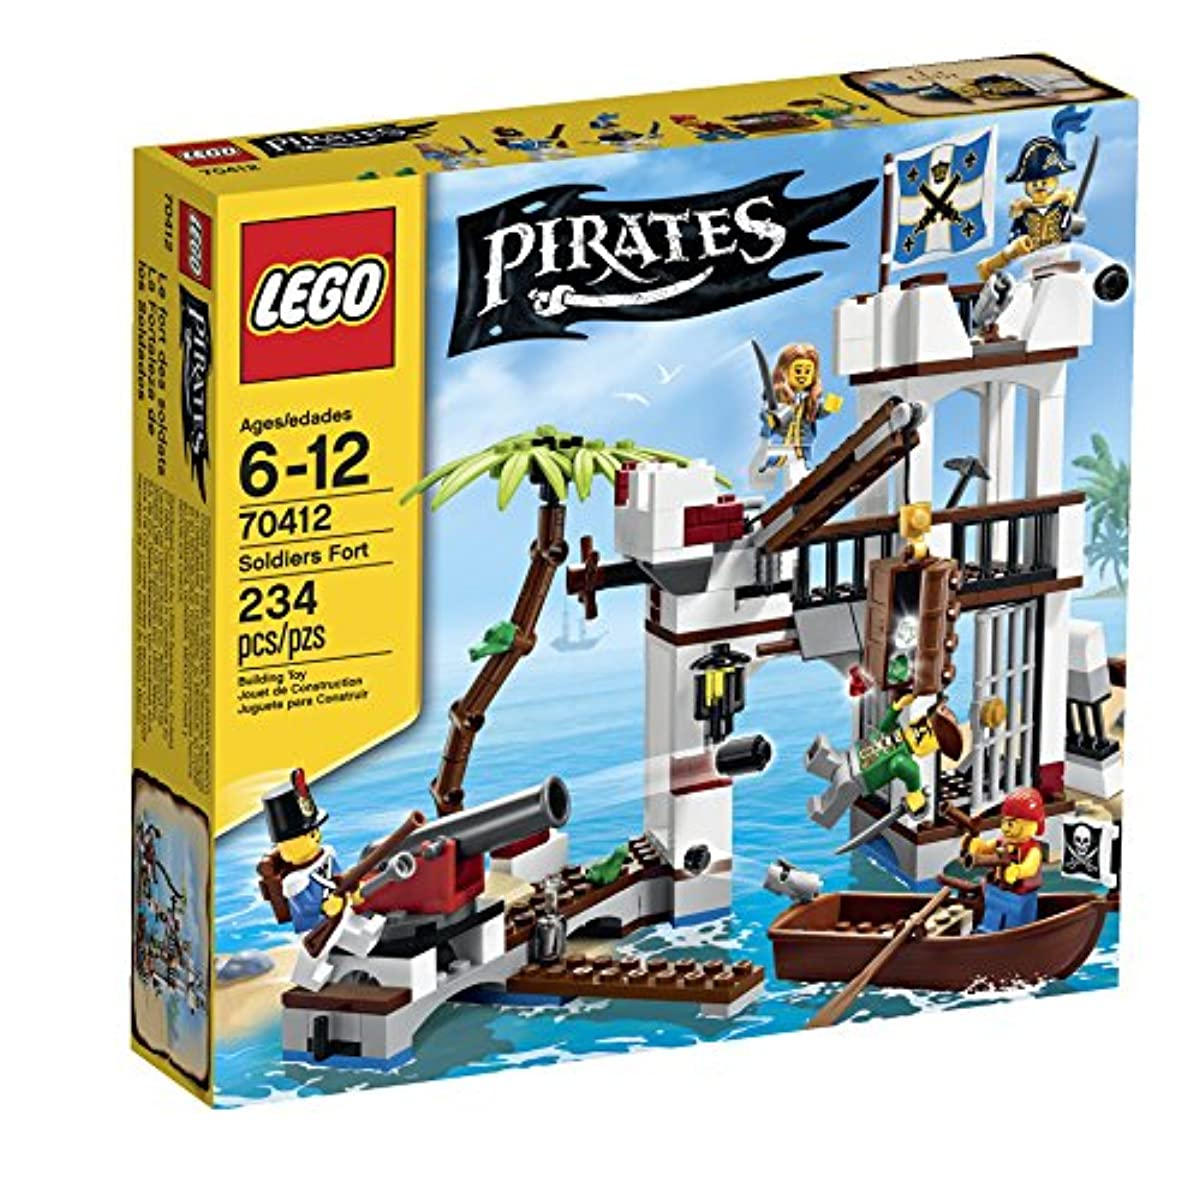 [해외] LEGO PIRATES SOLDIERS FORT